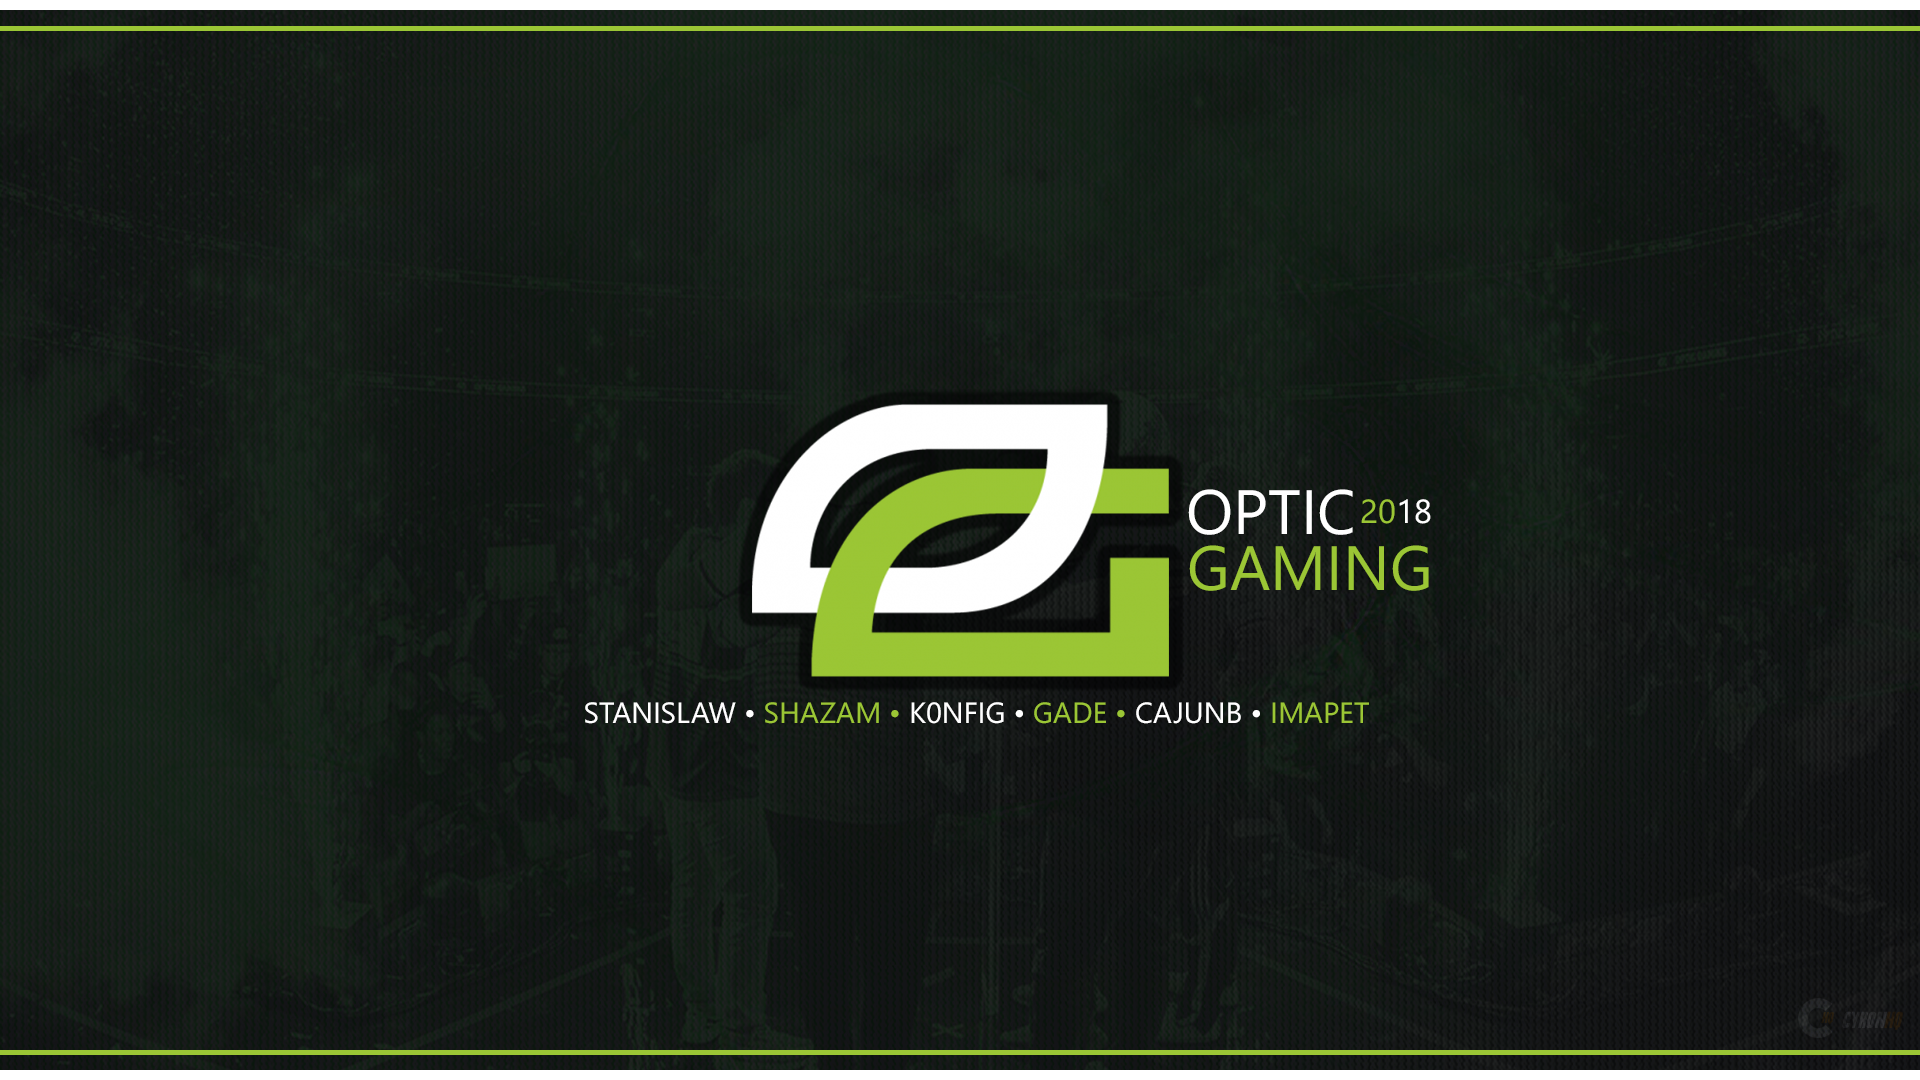 Optic Gaming 2018